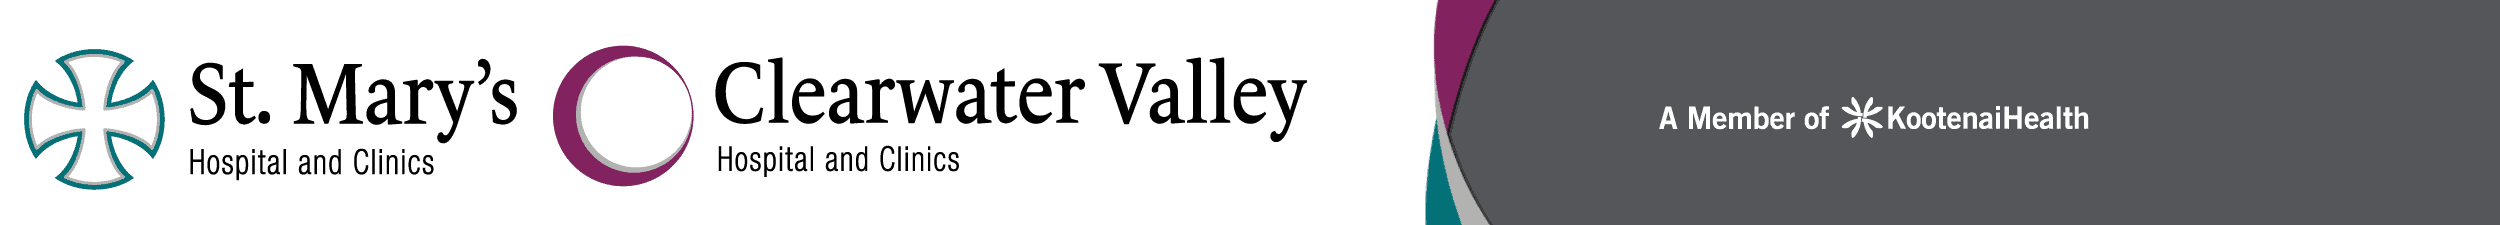 St. Mary's & Clearwater Valley Hospital & Clinics Logo